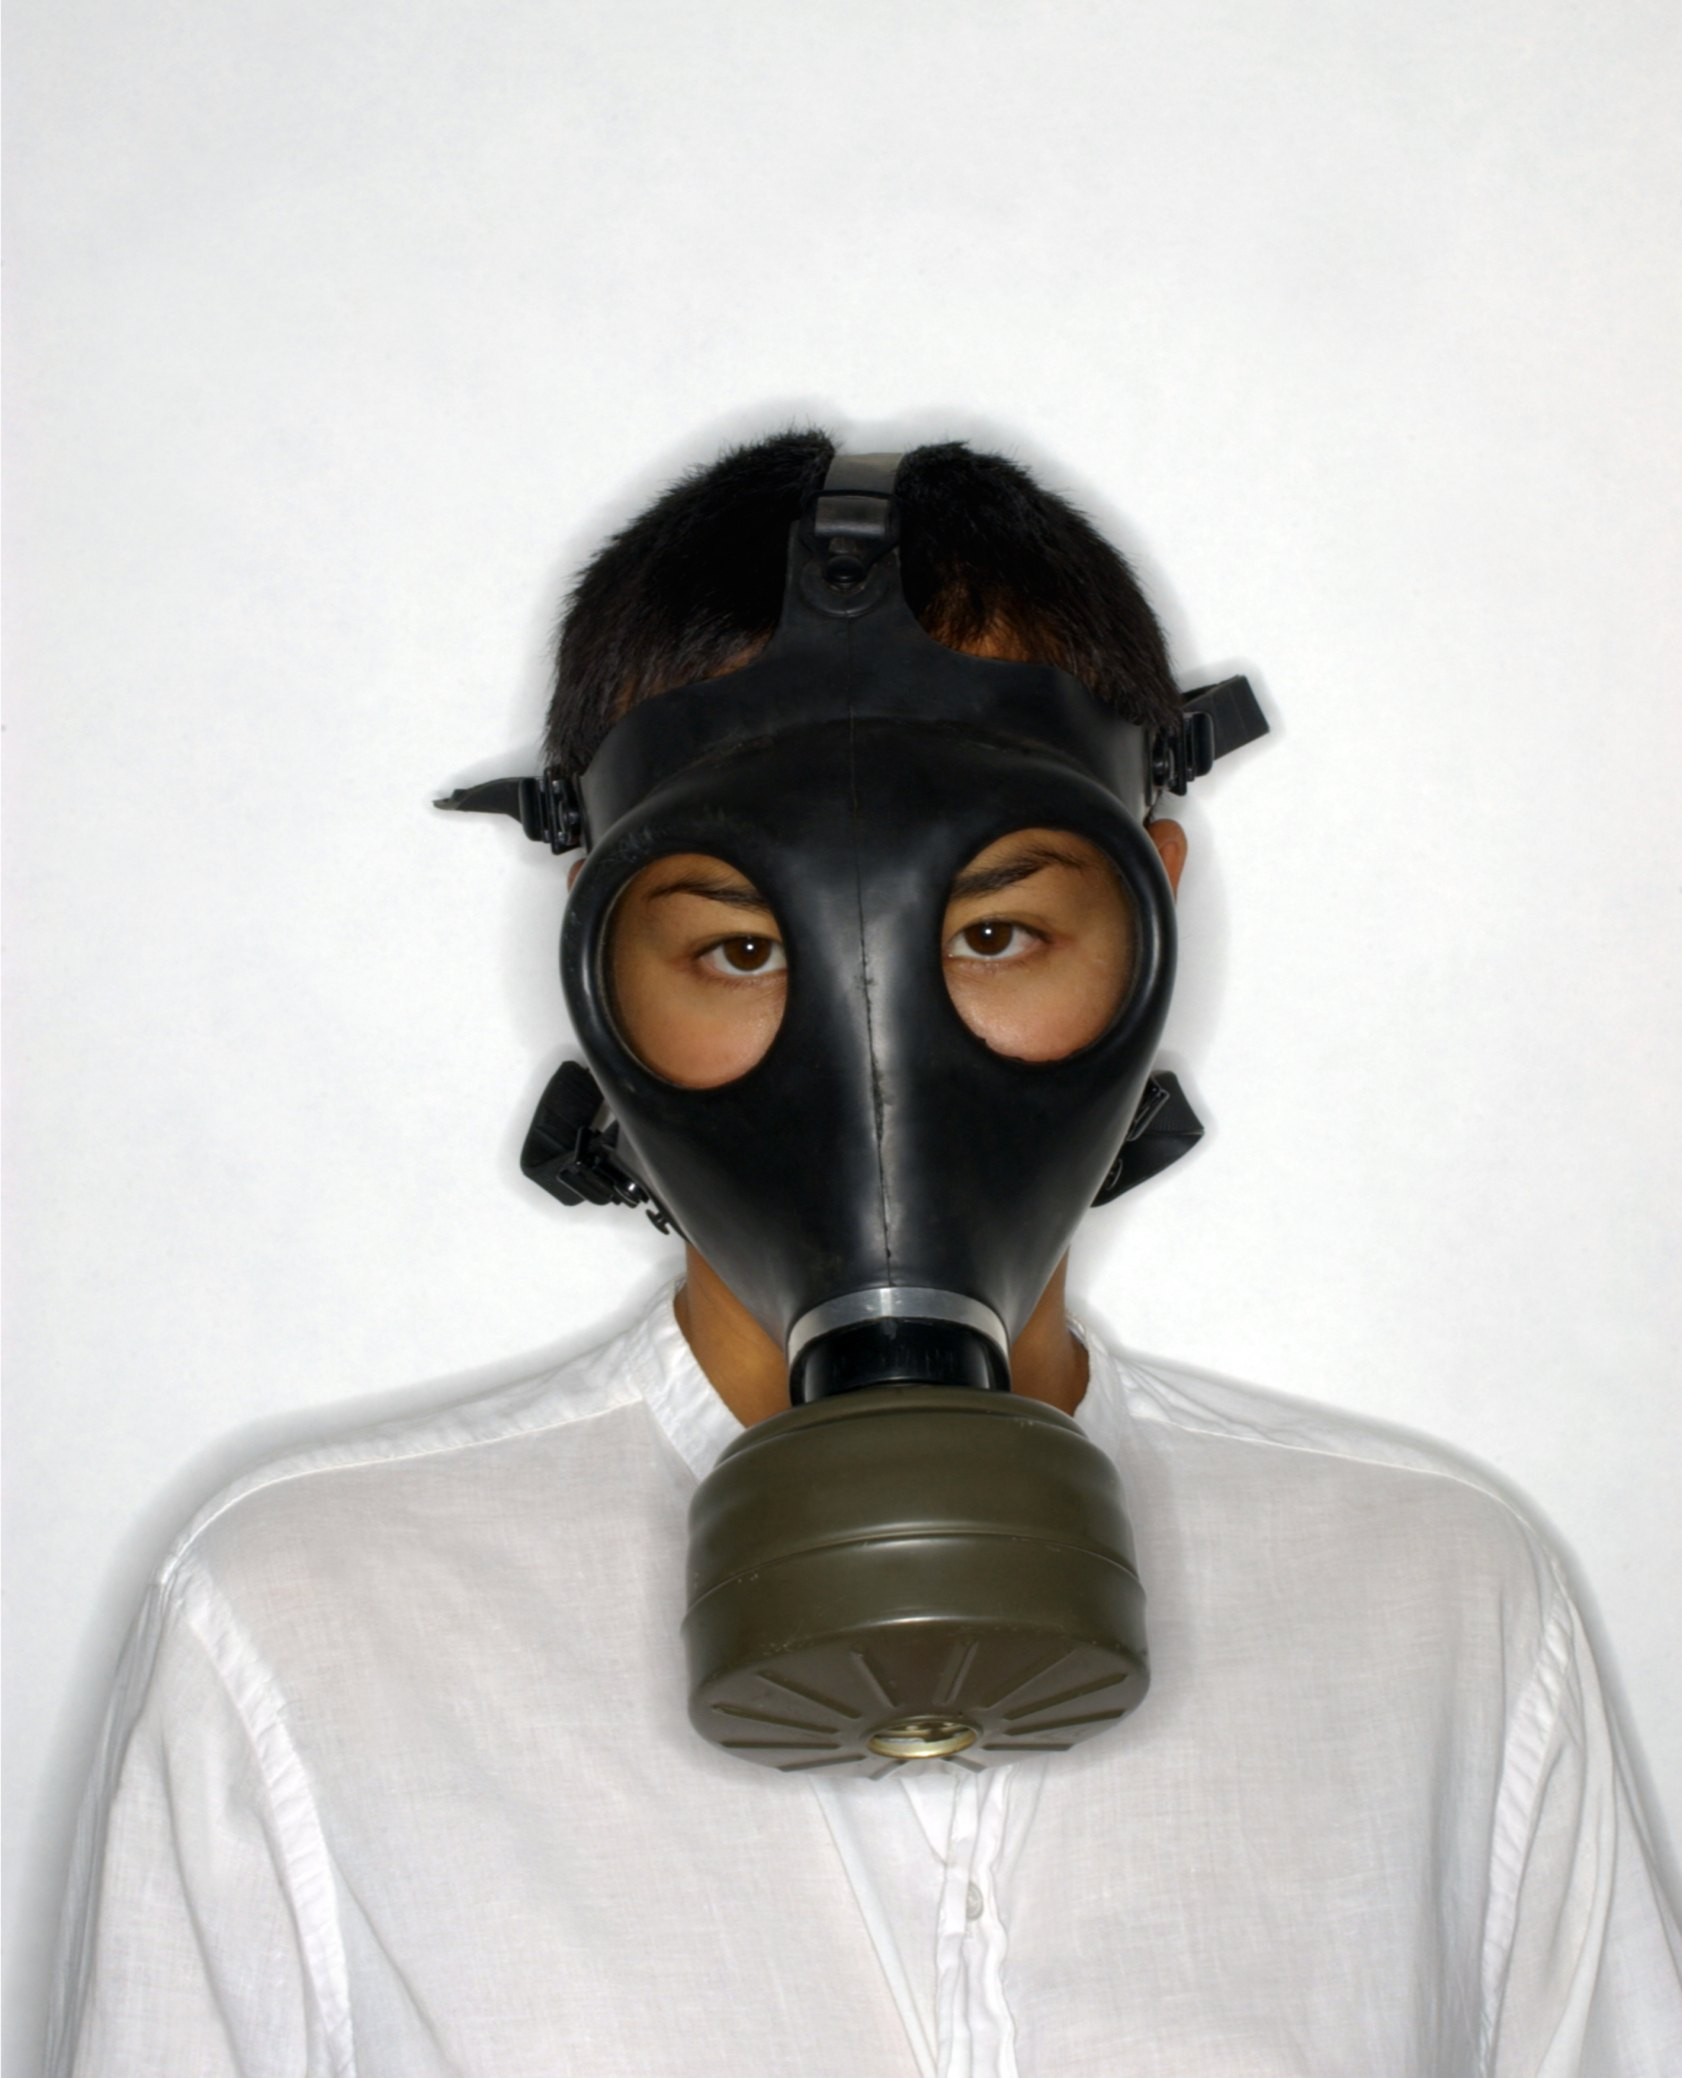 How to Make a Fake Gas Mask | eHow